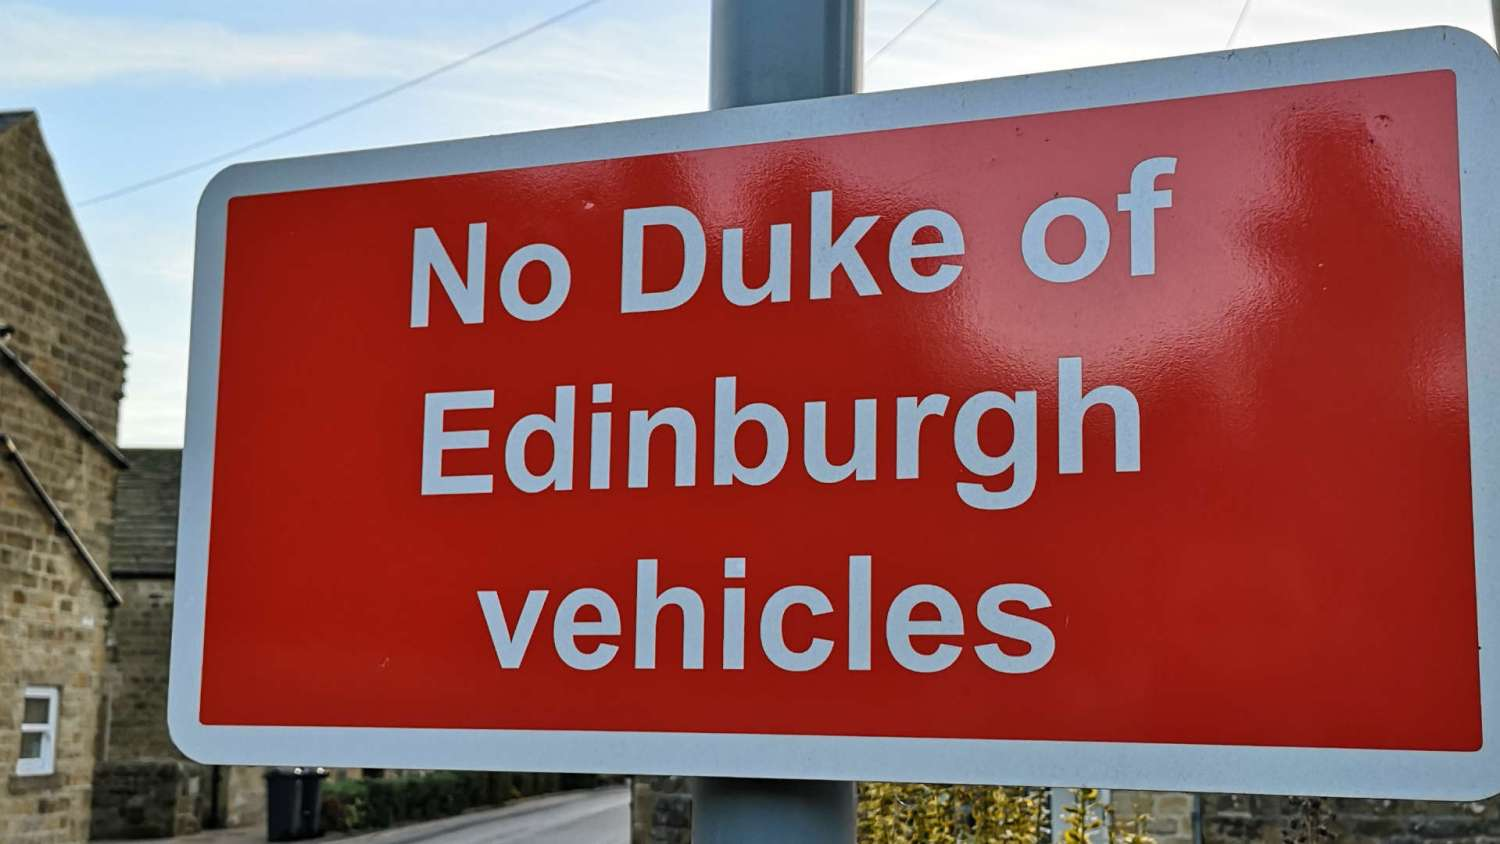 No Duke of Edinburgh vehicles